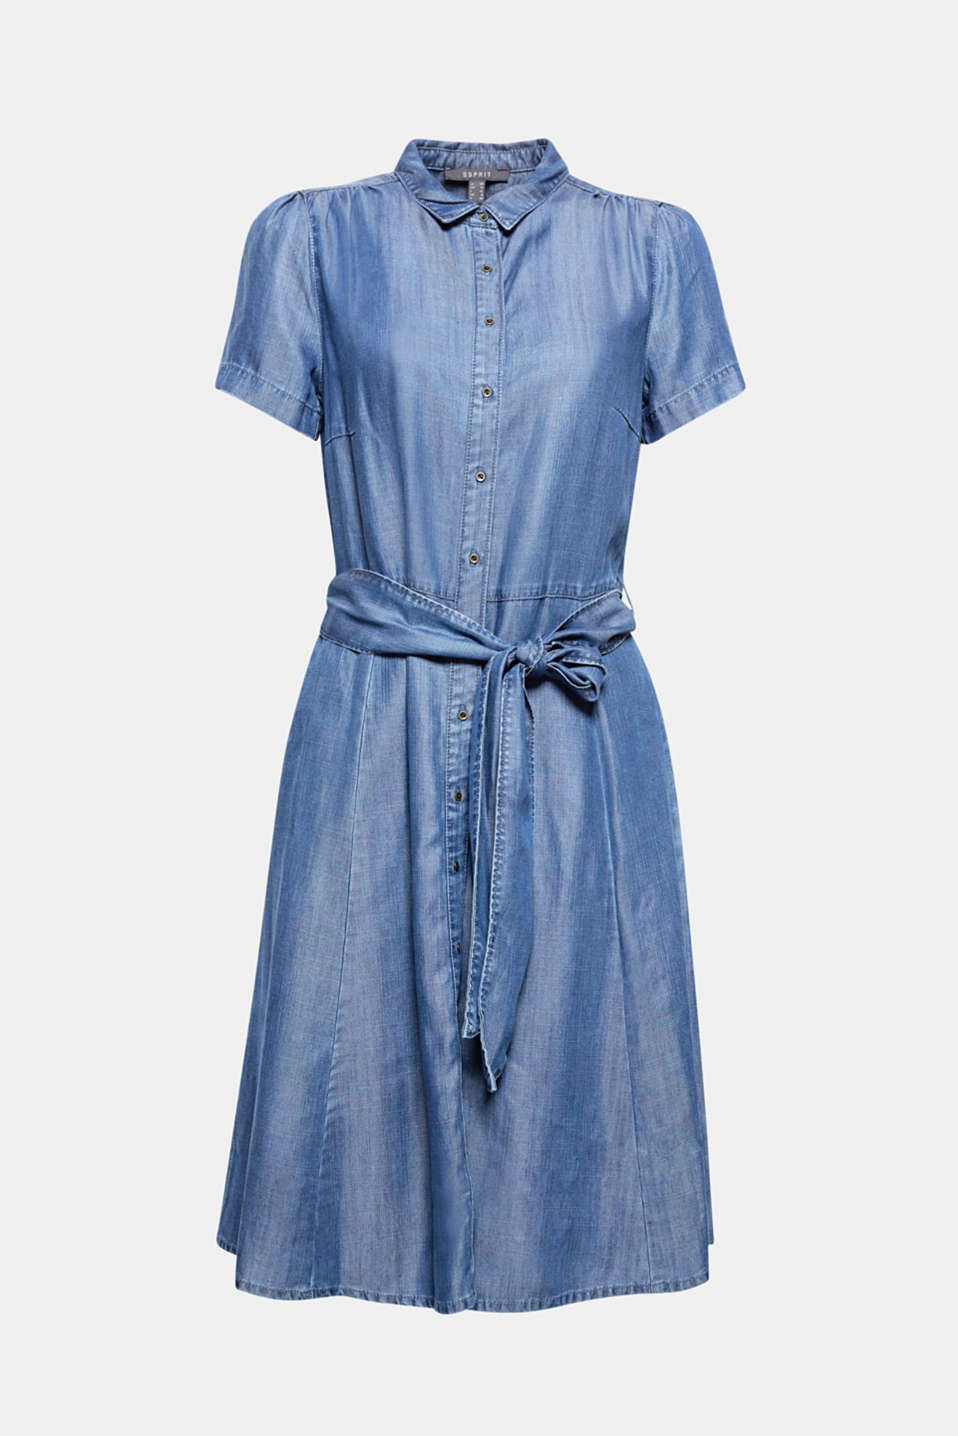 A summer dress for any occasion made of fluid lyocell fabric in a casual denim look with a button placket and wide tie-around belt.